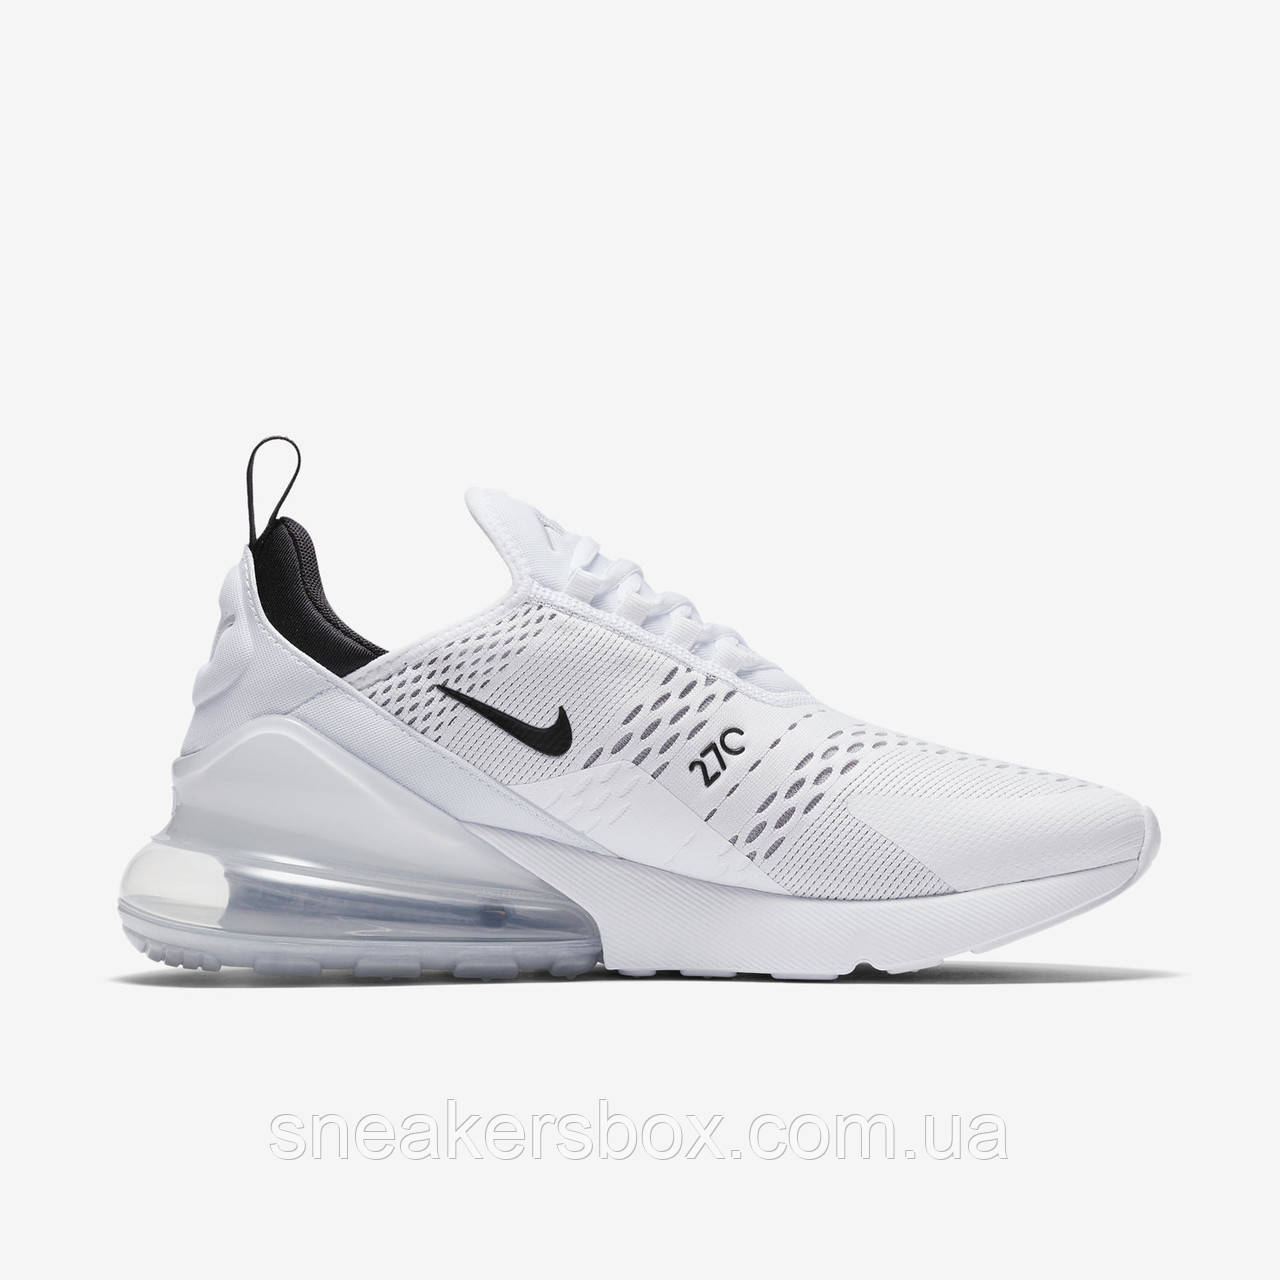 Оригинальные кроссовки Nike Air Max 270 White Black (AH8050-100) -  Sneakersbox 949fcd9caee